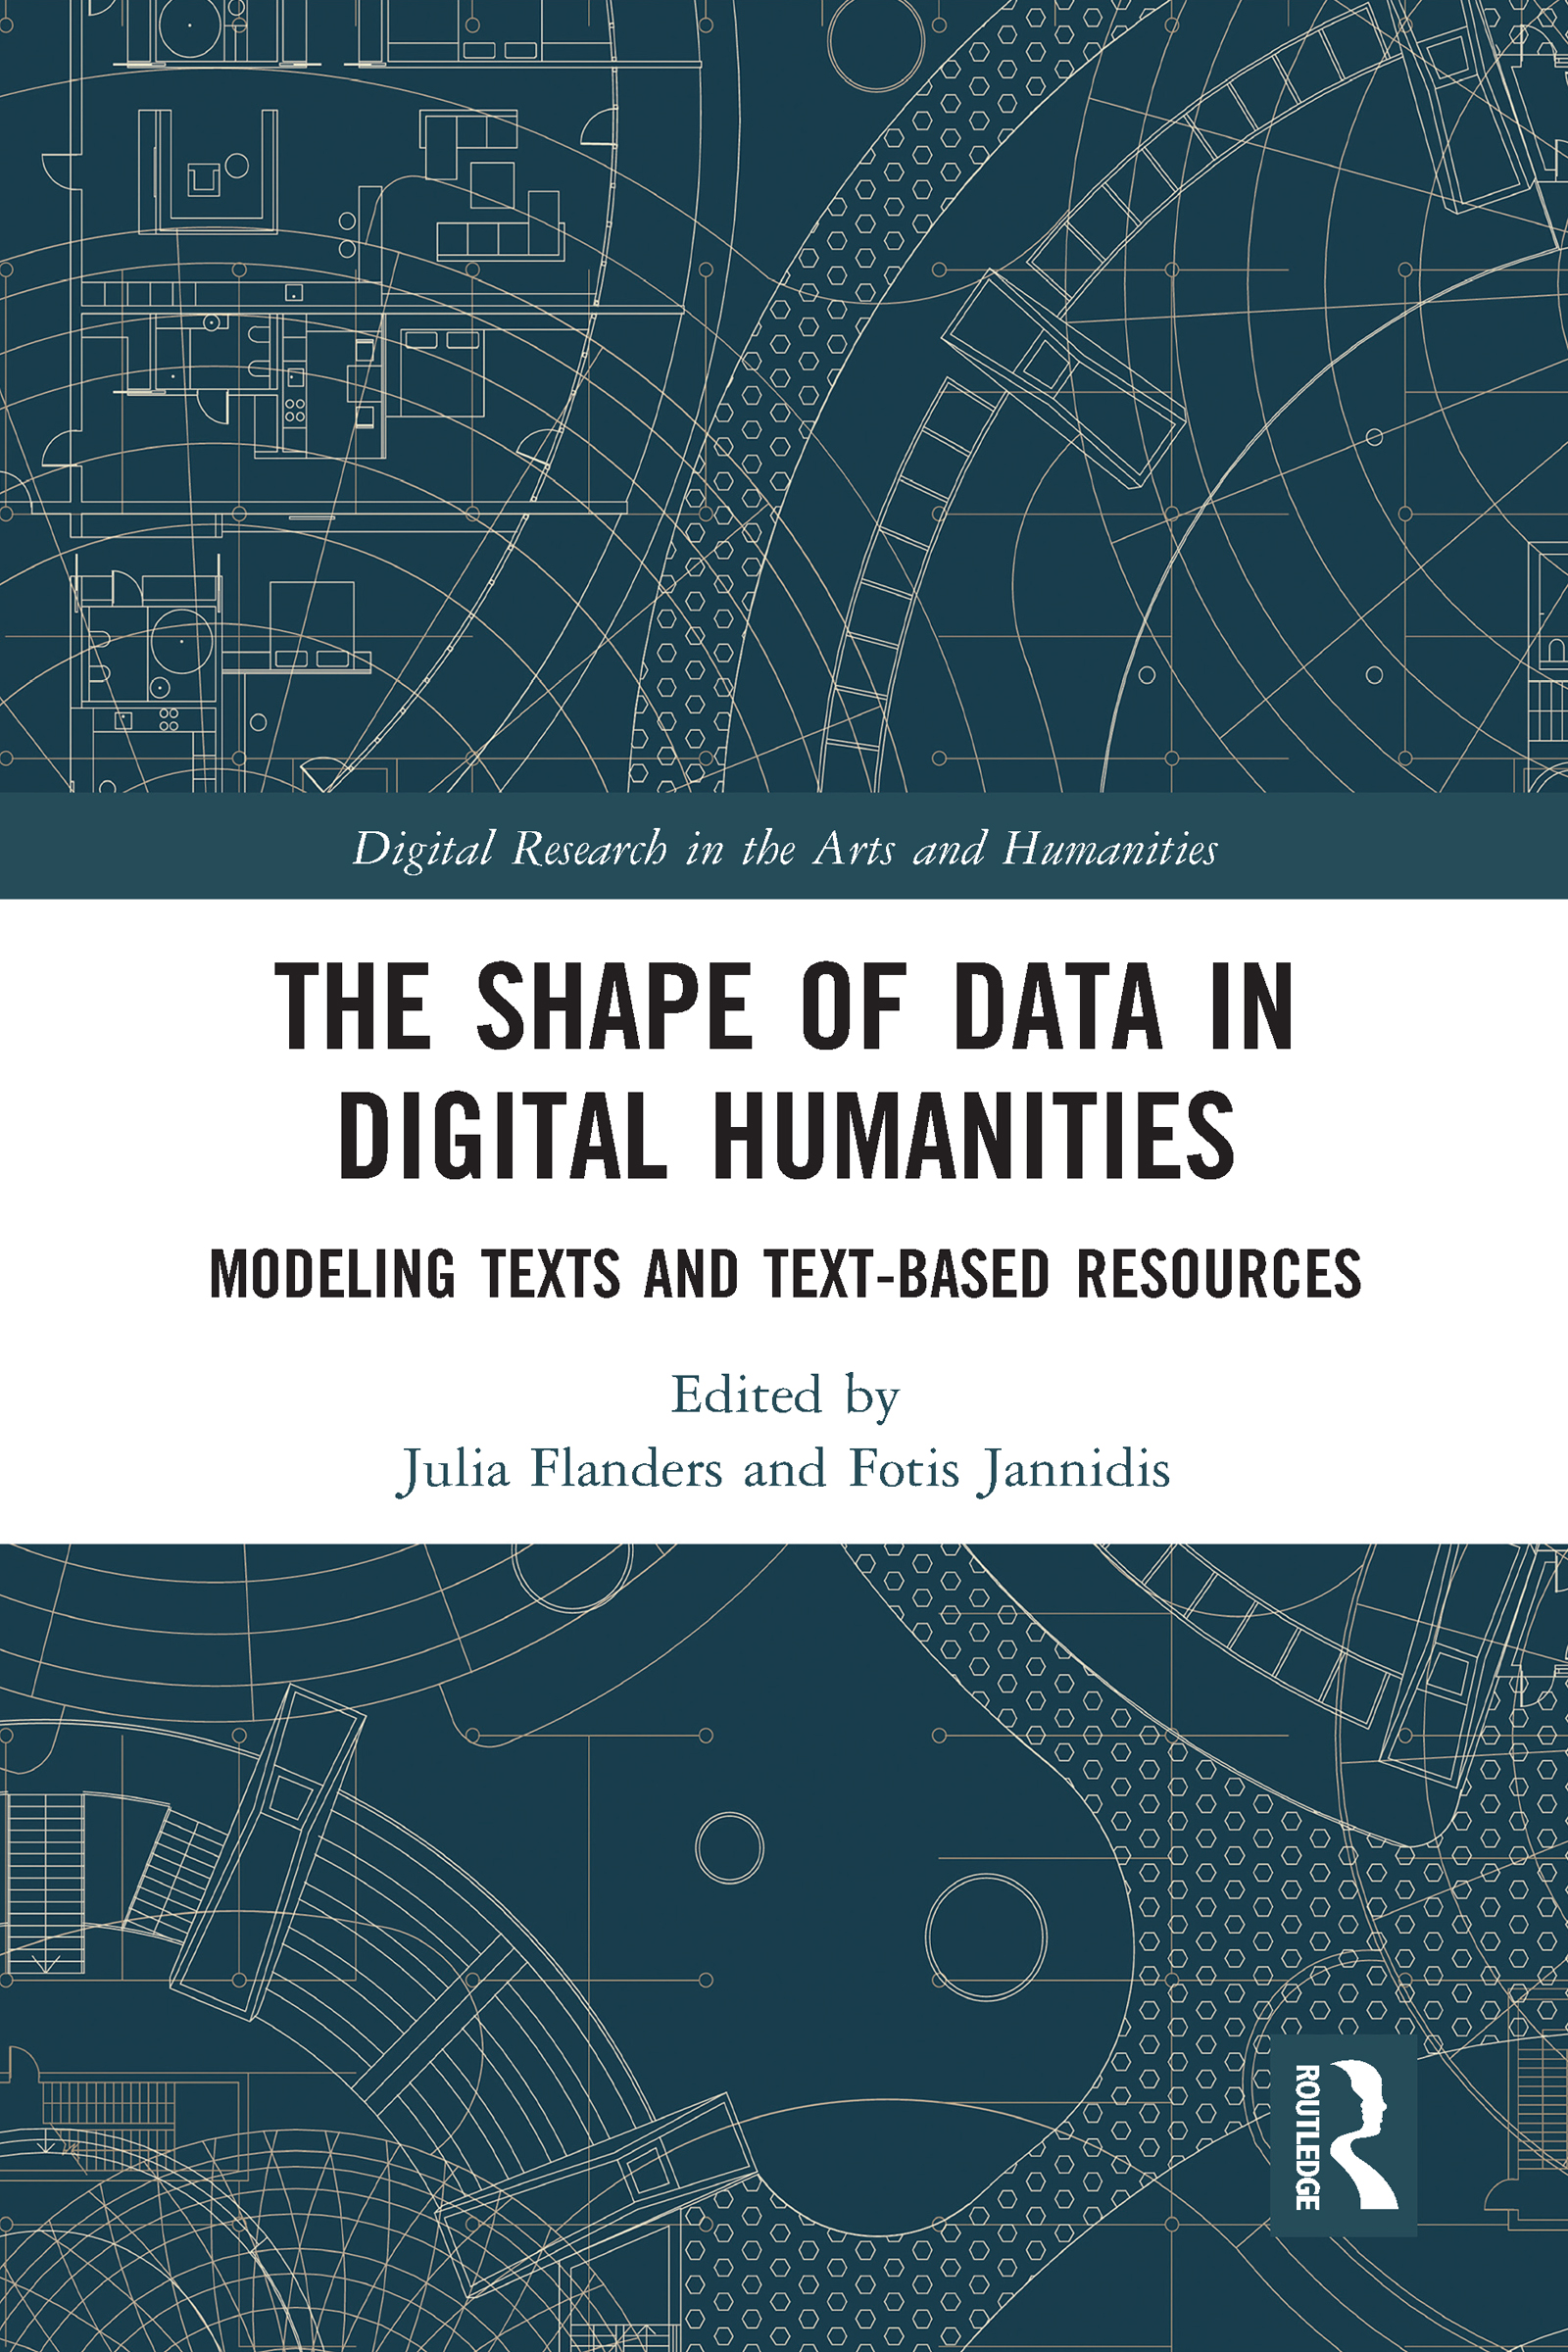 The Shape of Data in Digital Humanities